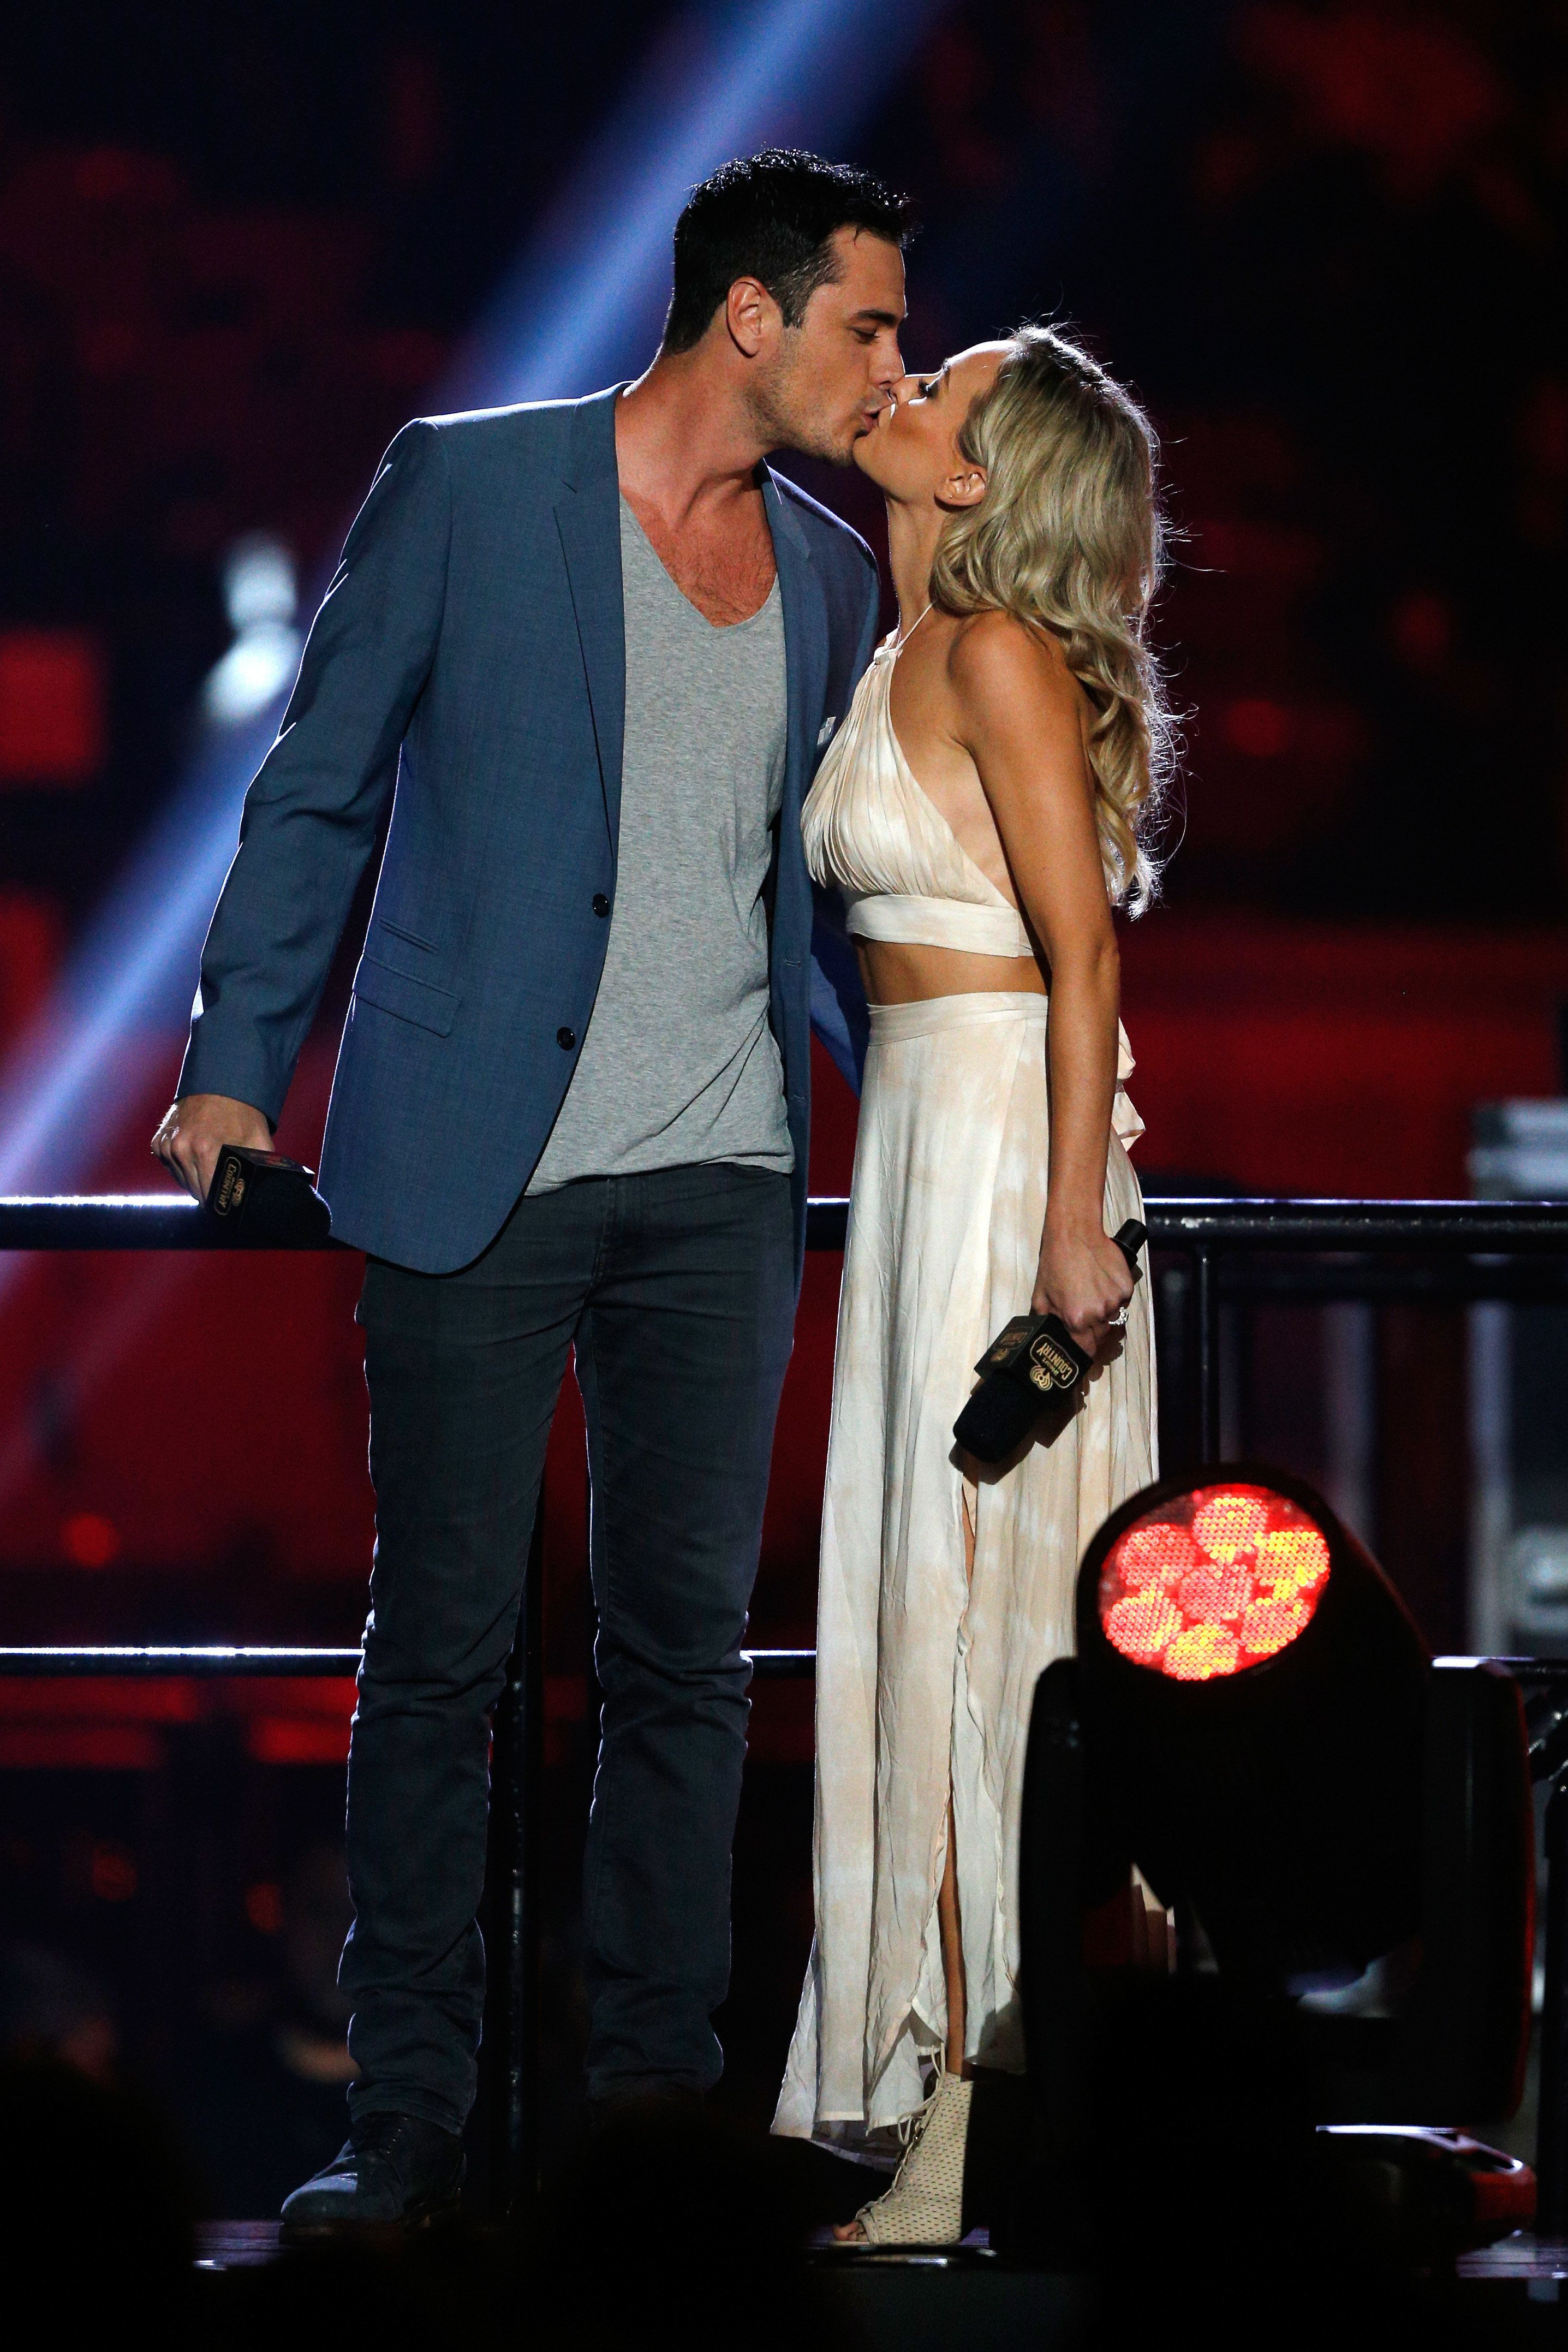 AUSTIN, TX - APRIL 30:  TV personalities Ben Higgins and Lauren Bushnell speak onstage during the 2016 iHeartCountry Festival at The Frank Erwin Center on April 30, 2016 in Austin, Texas.  (Photo by Bob Levey/Getty Images for iHeartMedia)